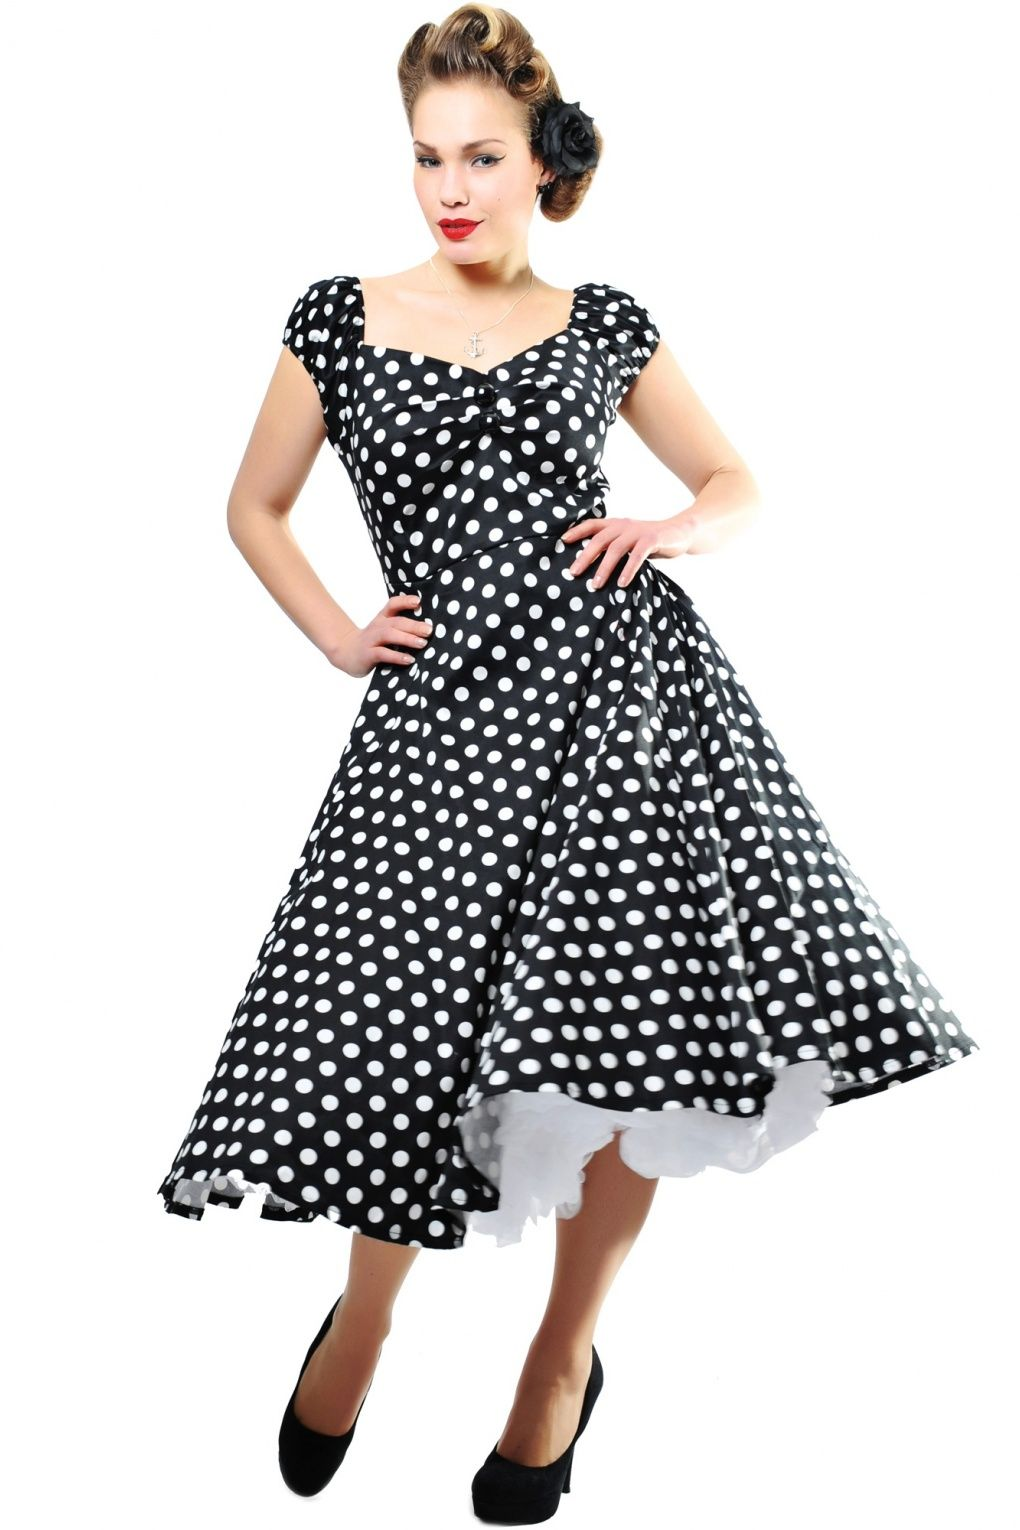 21f66d25d04df2 Collectif Clothing - 50s Dolores Doll dress Black White polka swing dress